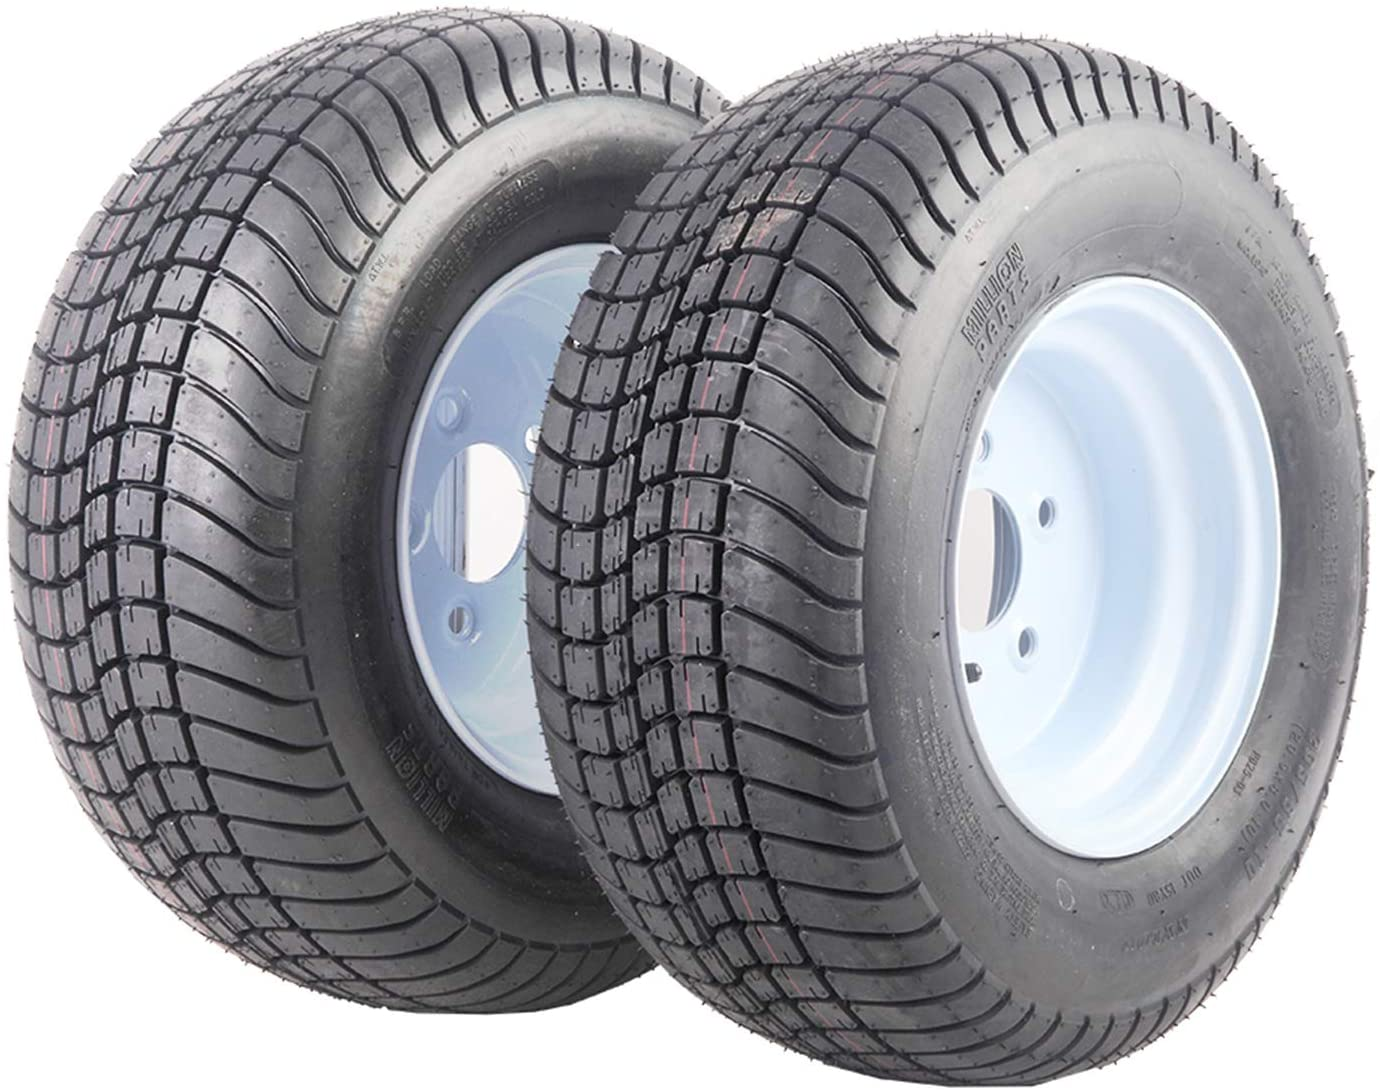 SUNROAD 2PCS Trailer Tires 20.5x8-10 205/65-10 White Wheels Tire Mounted 5x4.5 Bolt Circle with Rims Pattern P825